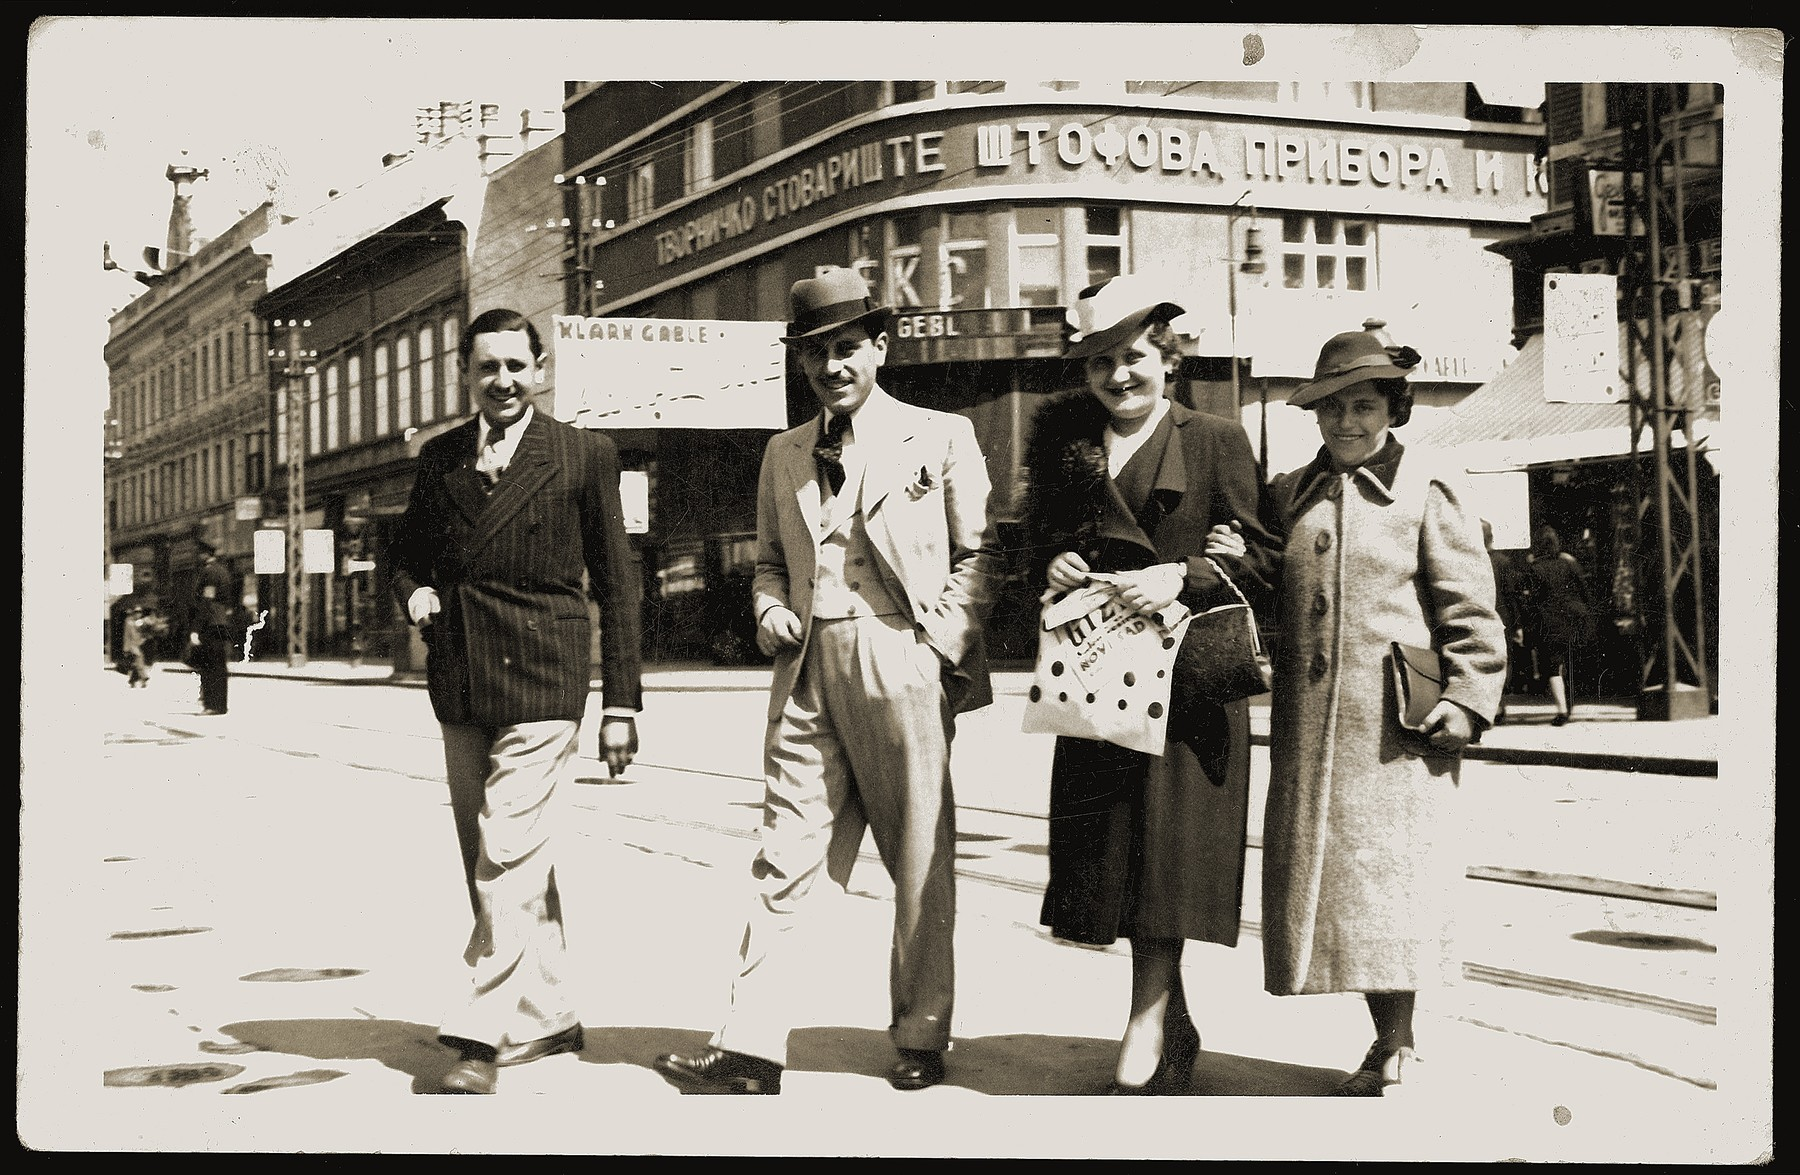 Members of the Mandil family pose on a street in Novi Sad, Yugoslavia.  Pictured are Mosa (Moshe) and Gabriela Mandil (center) with his Mosa's sister Streja (right) and a friend.